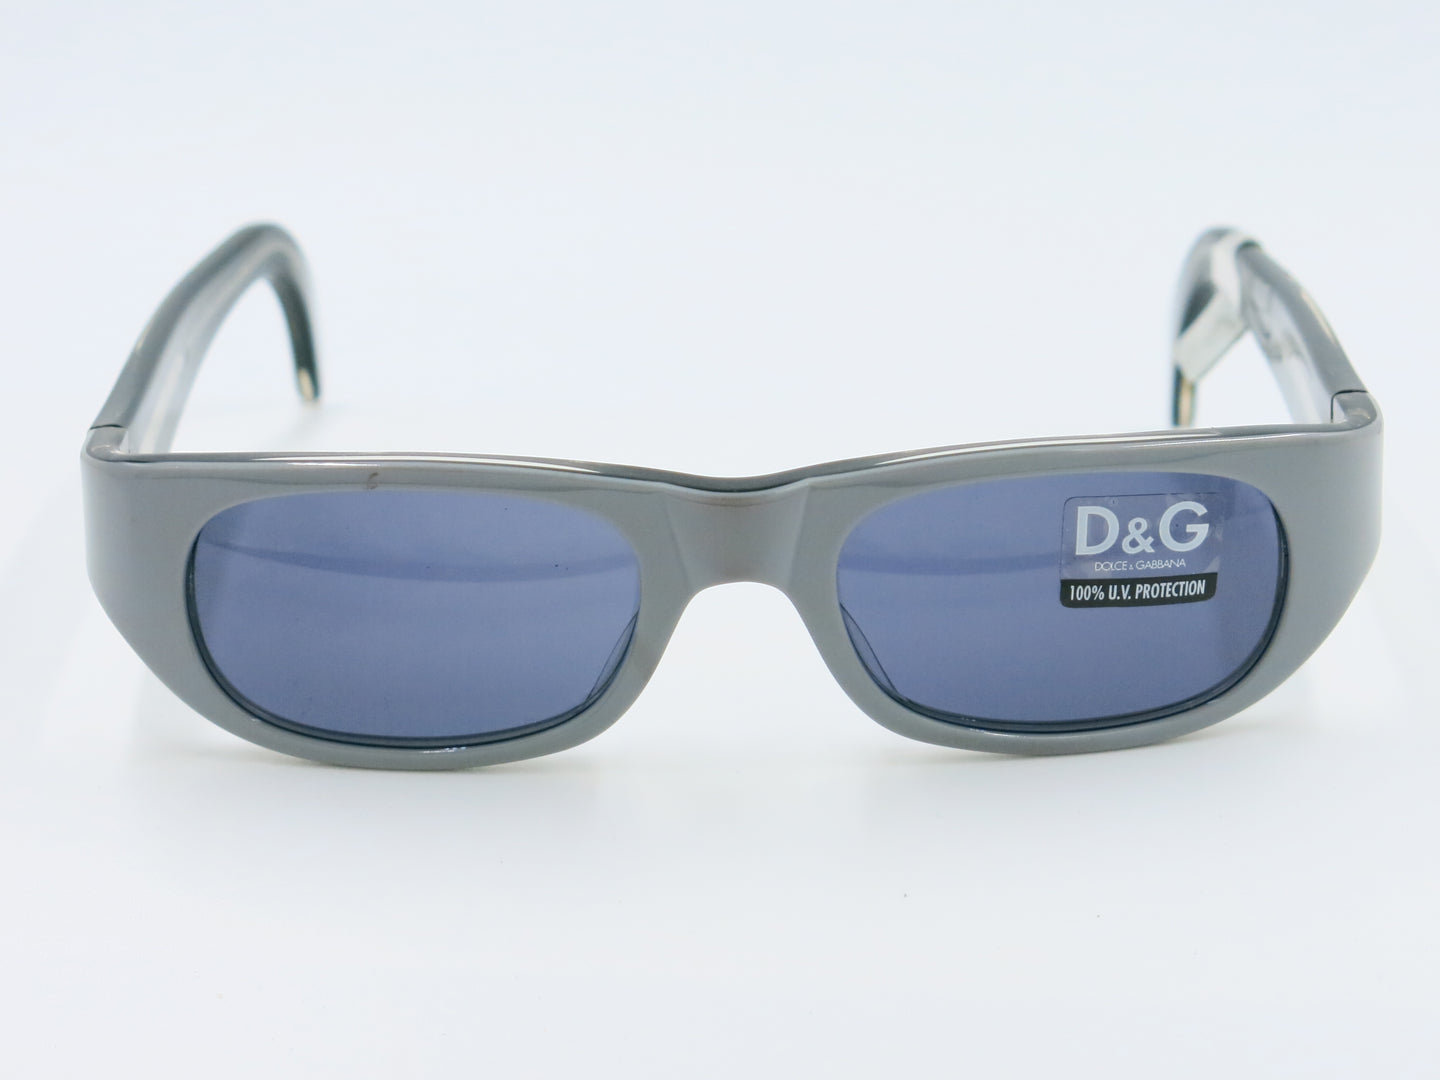 Dolce & Gabbana Sunglasses DG 2003 | Sunglasses by Dolce & Gabbana | Friedman & Sons